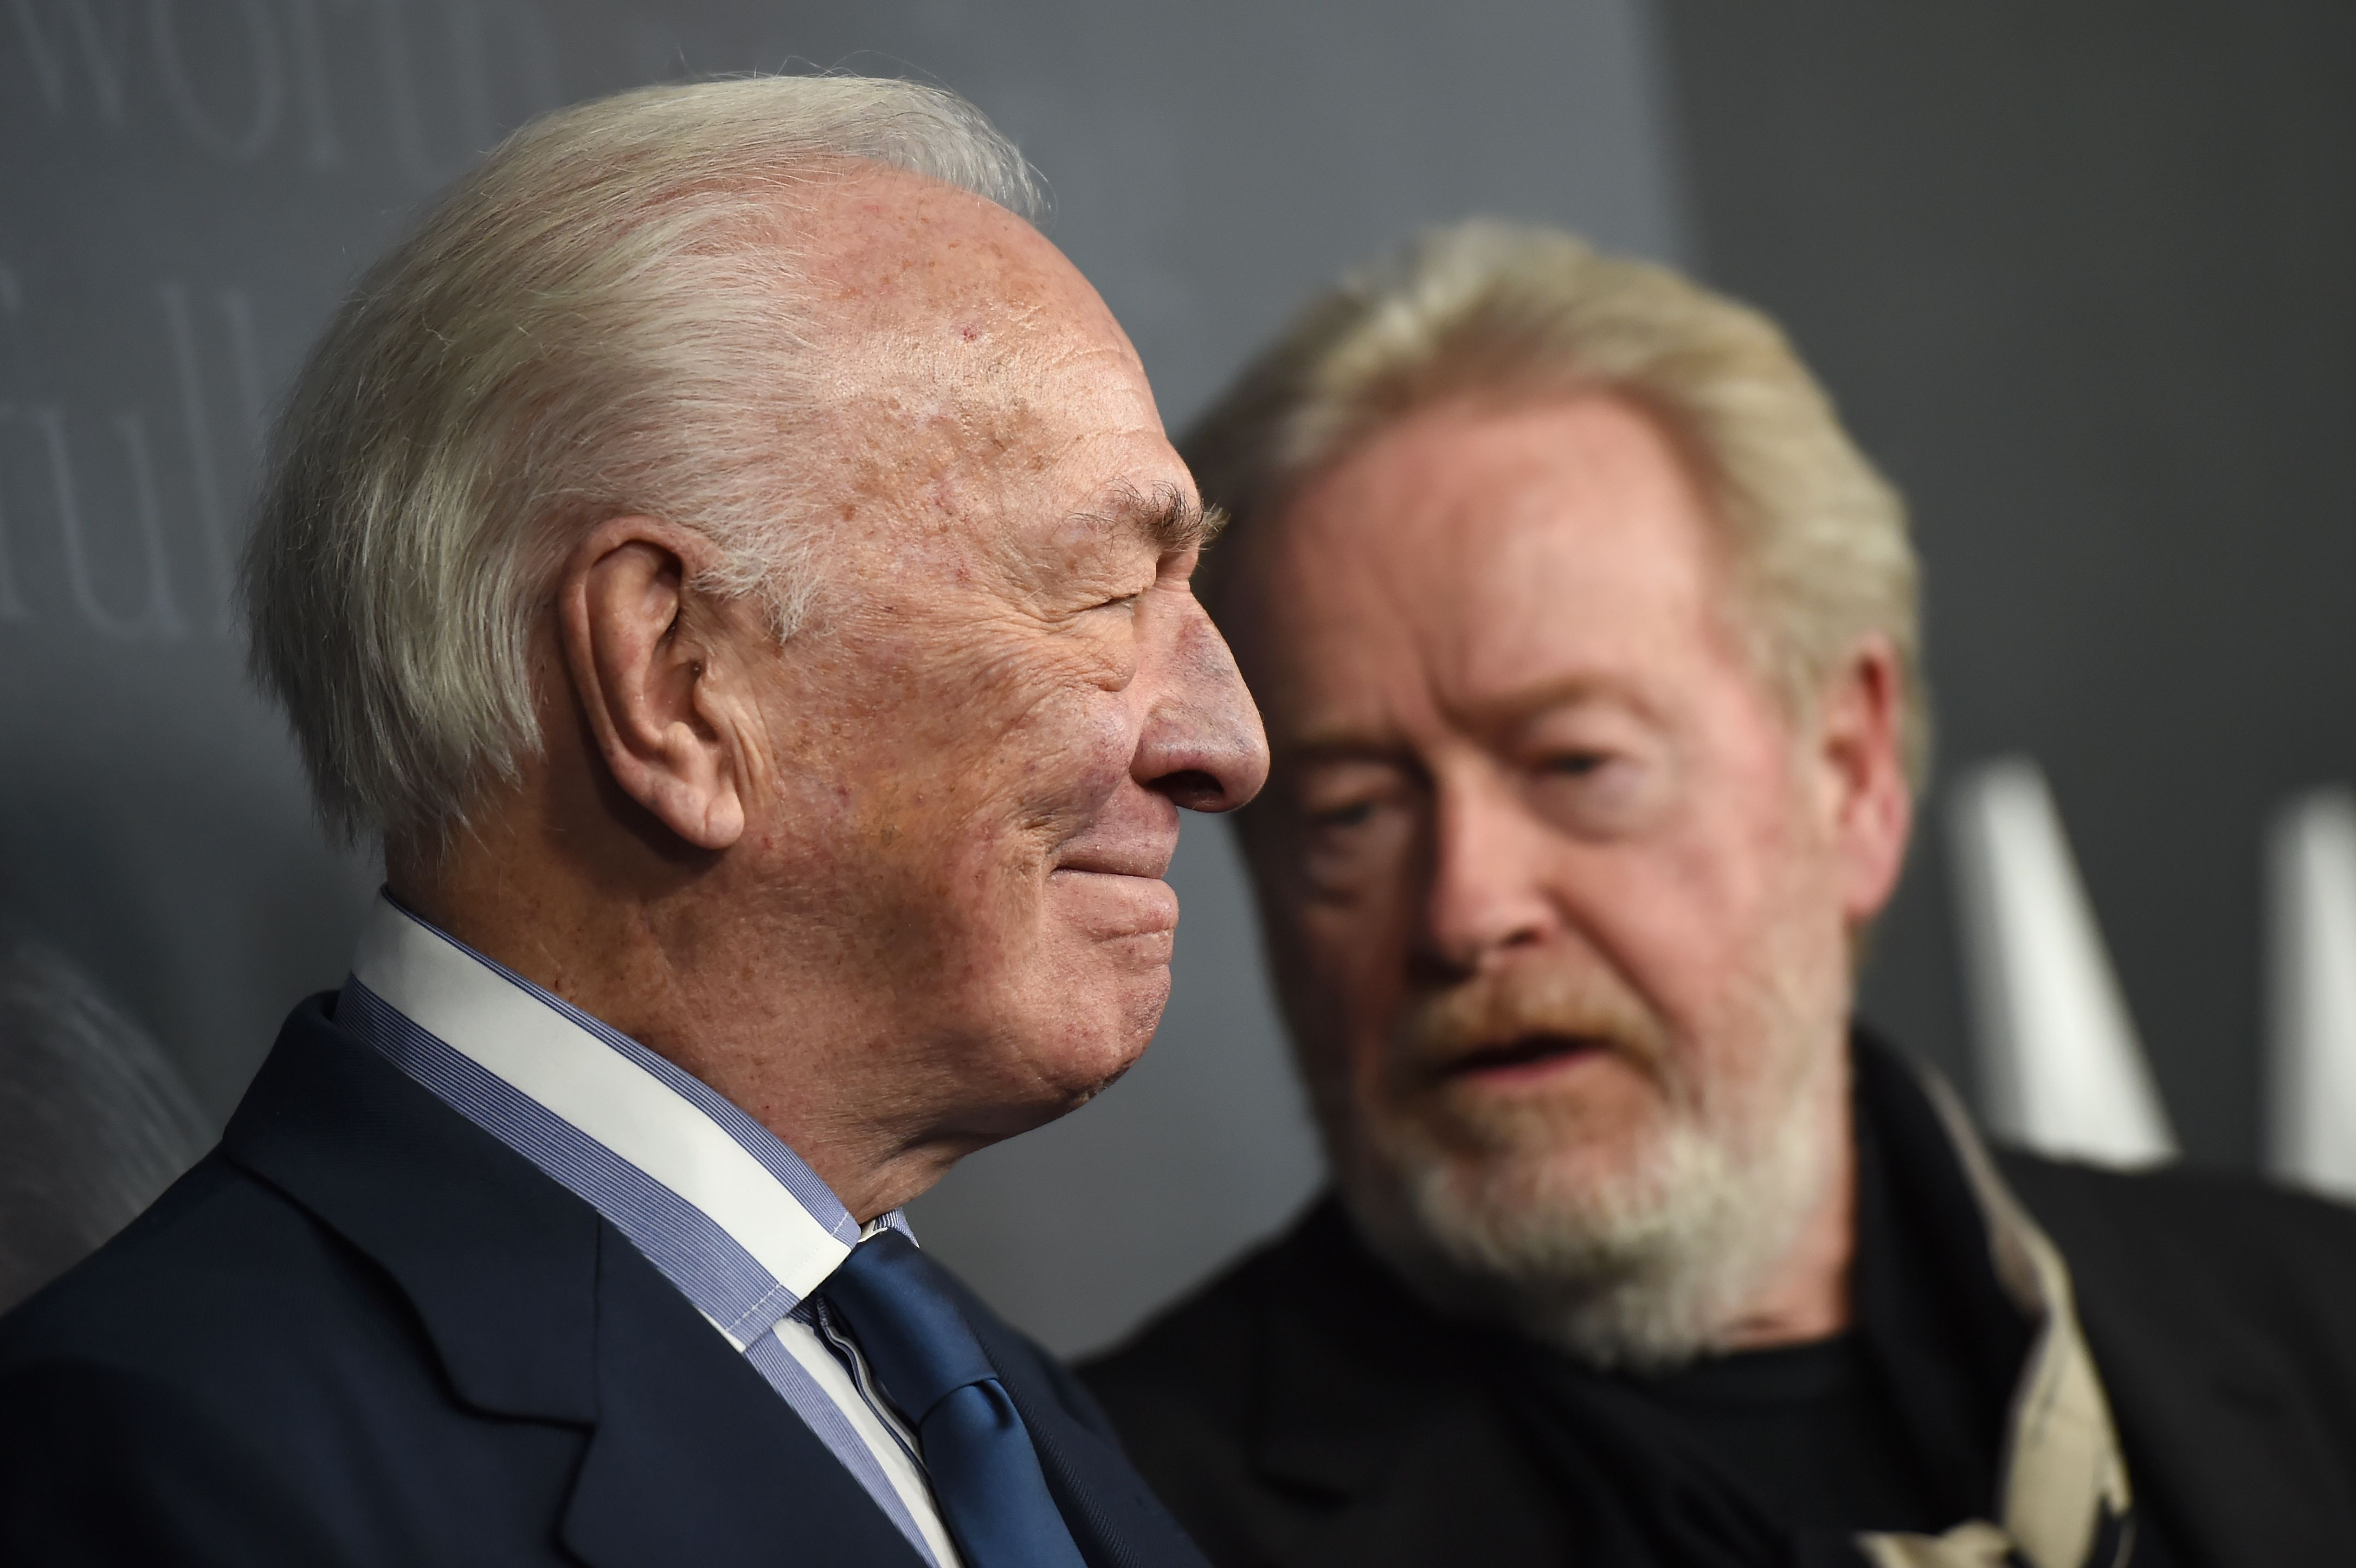 Christopher Plummer and Ridley Scott'All the Money in the World' film premiere, Los Angeles, USA - 18 Dec 2017